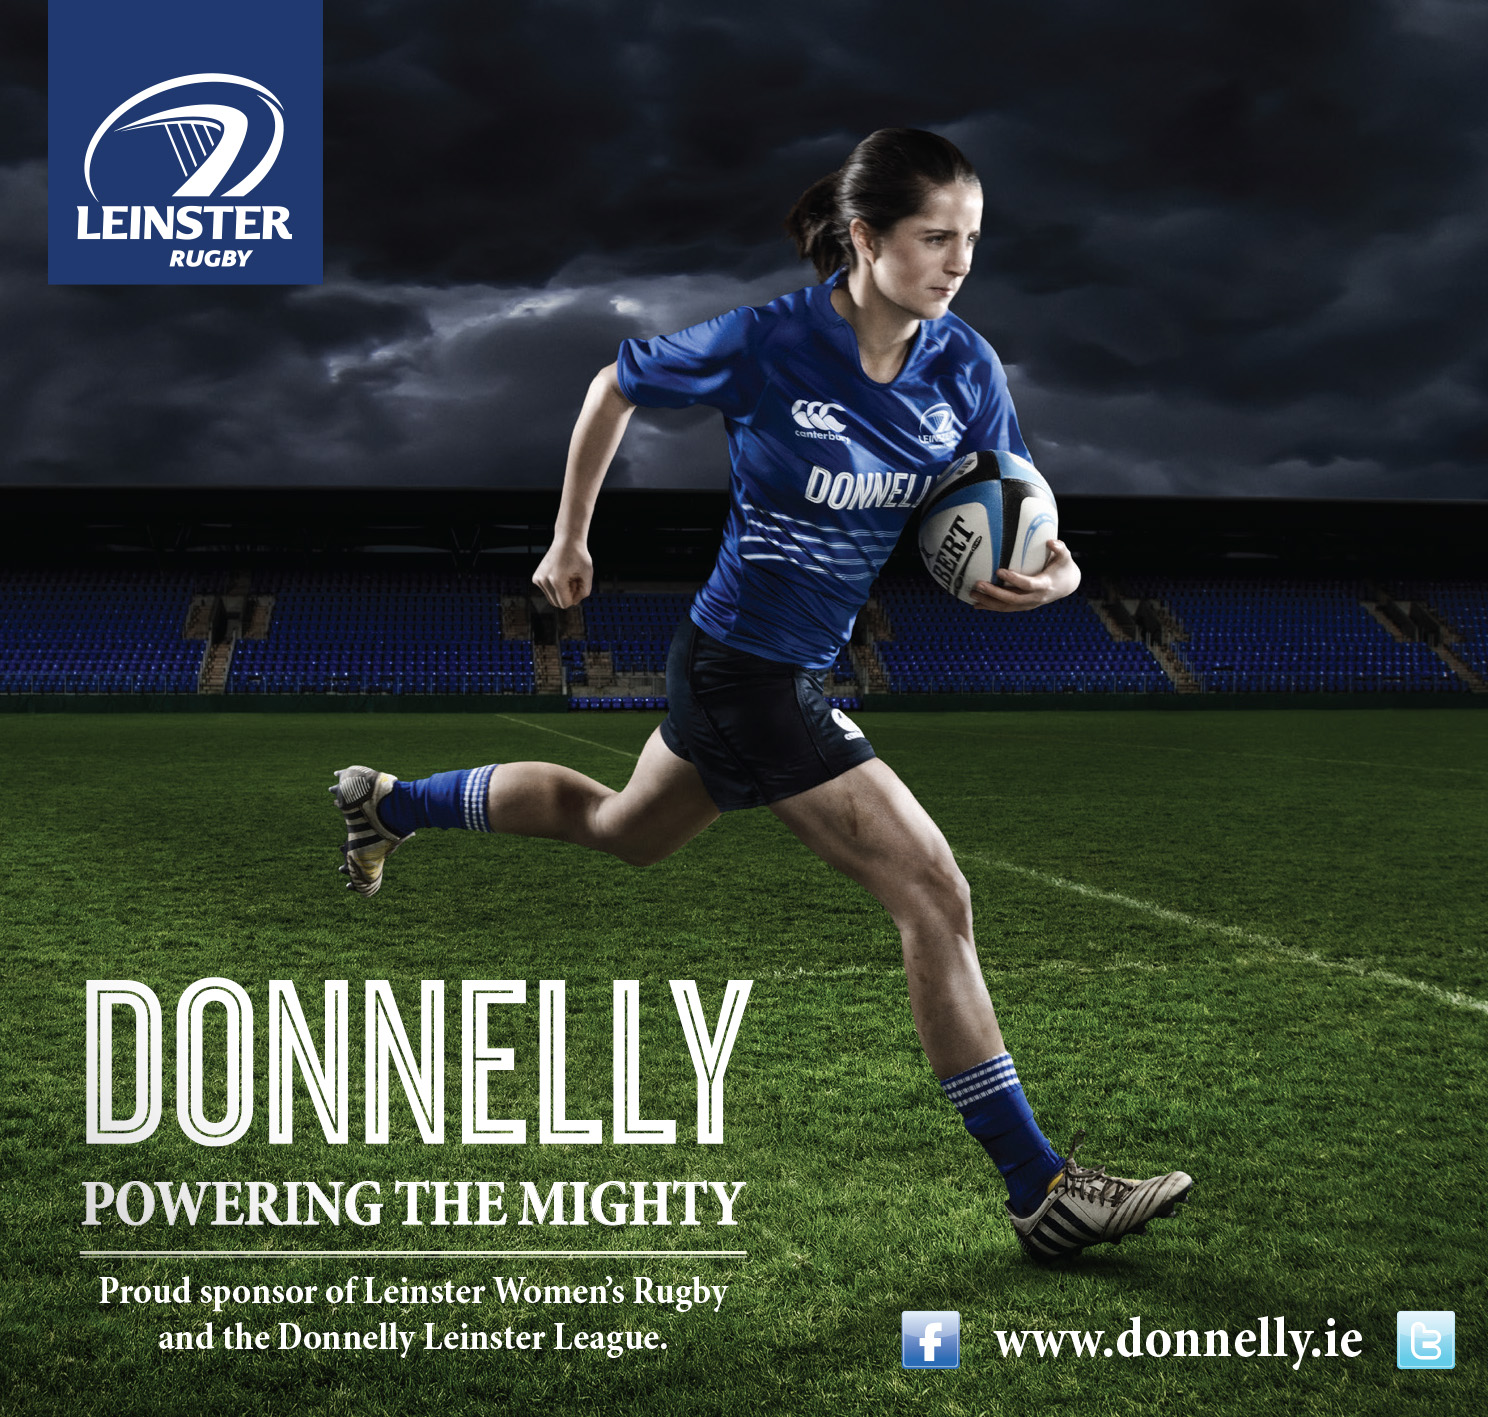 Donnelly's Leinster Women's Rugby